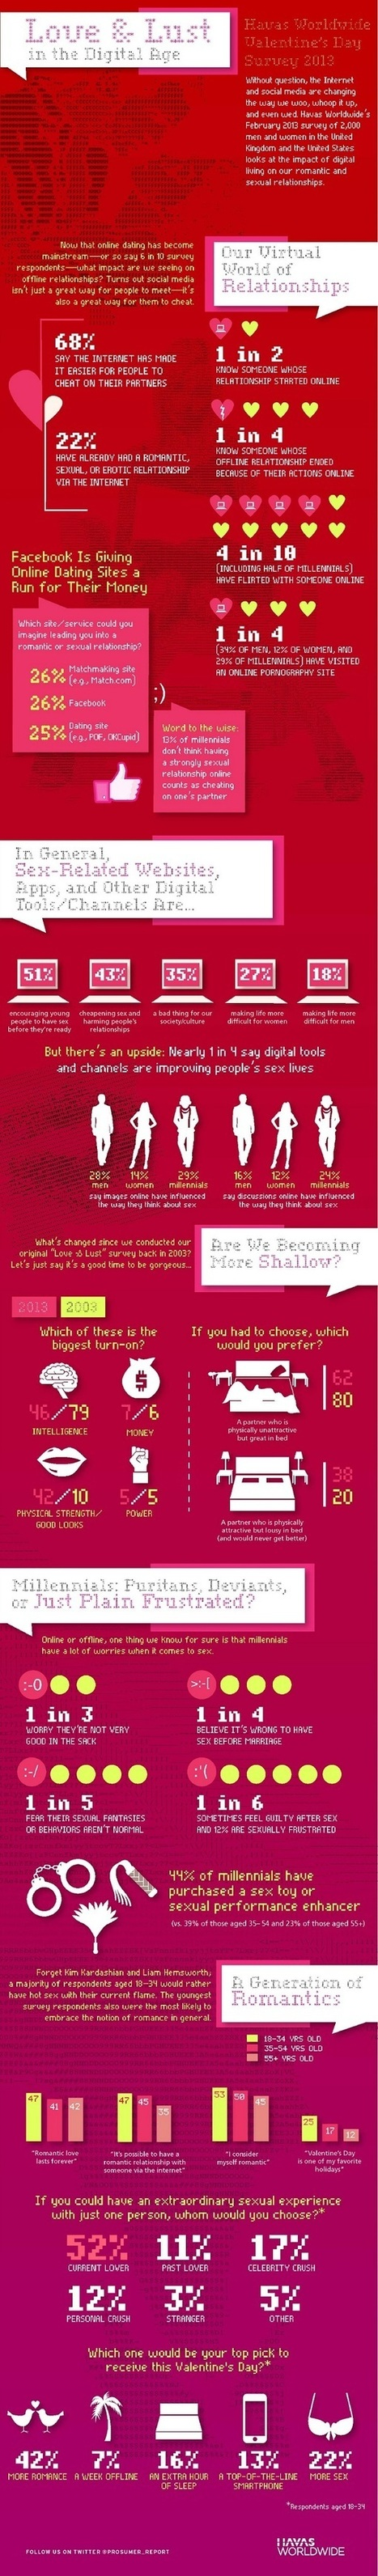 Love & Lust in the Digital Age [Infographic] | Medical  Health Care | Scoop.it